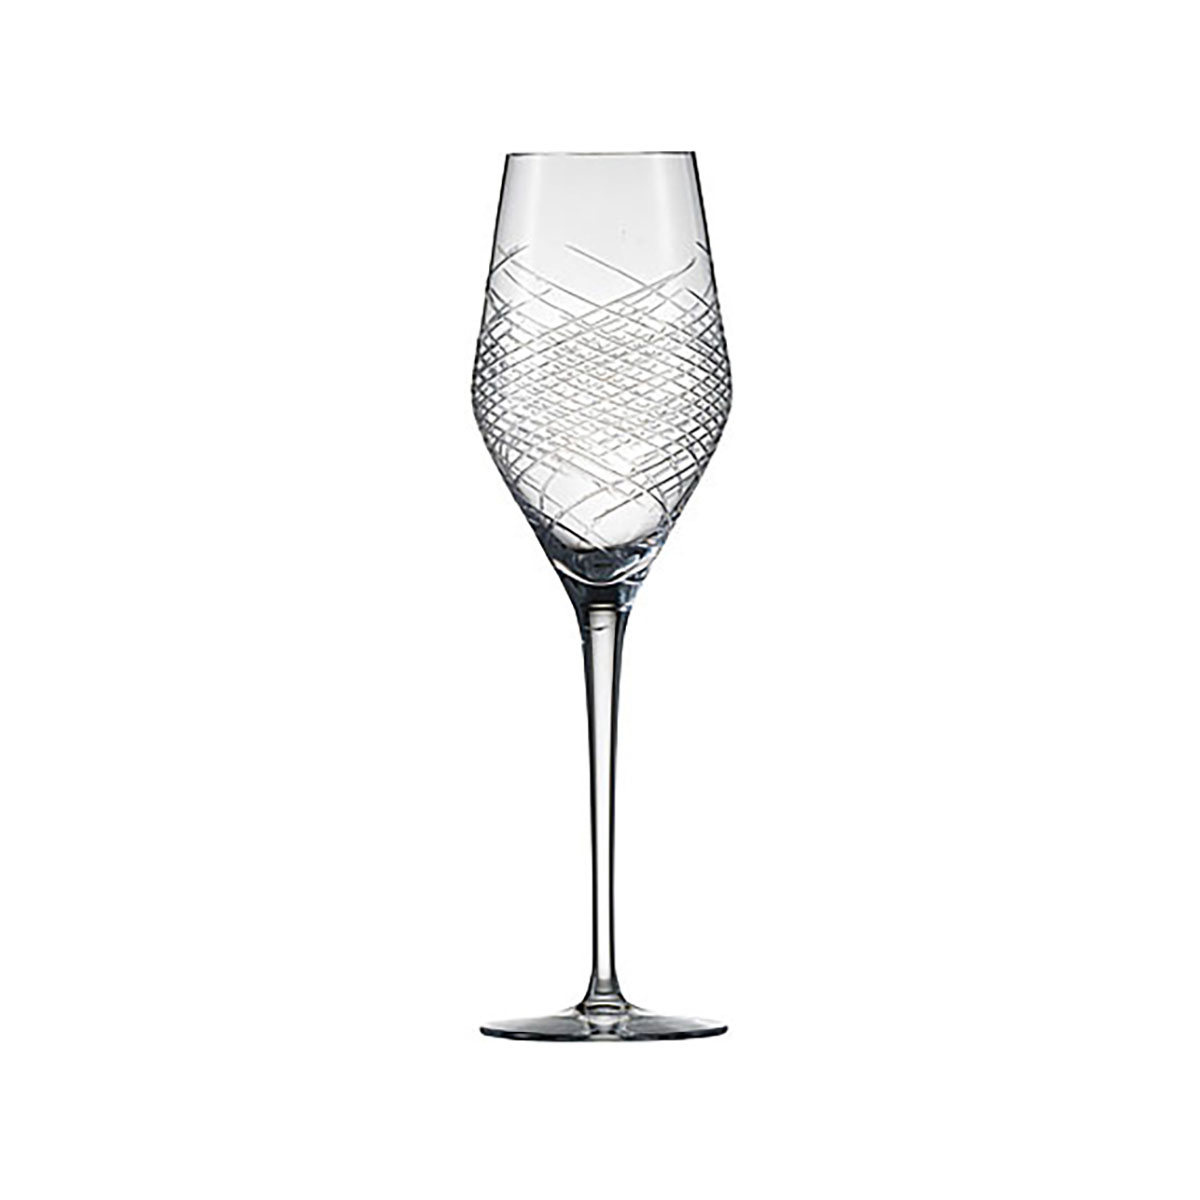 Zwiesel 1872 Charles Schumann Hommage Comete Champagne, Pair